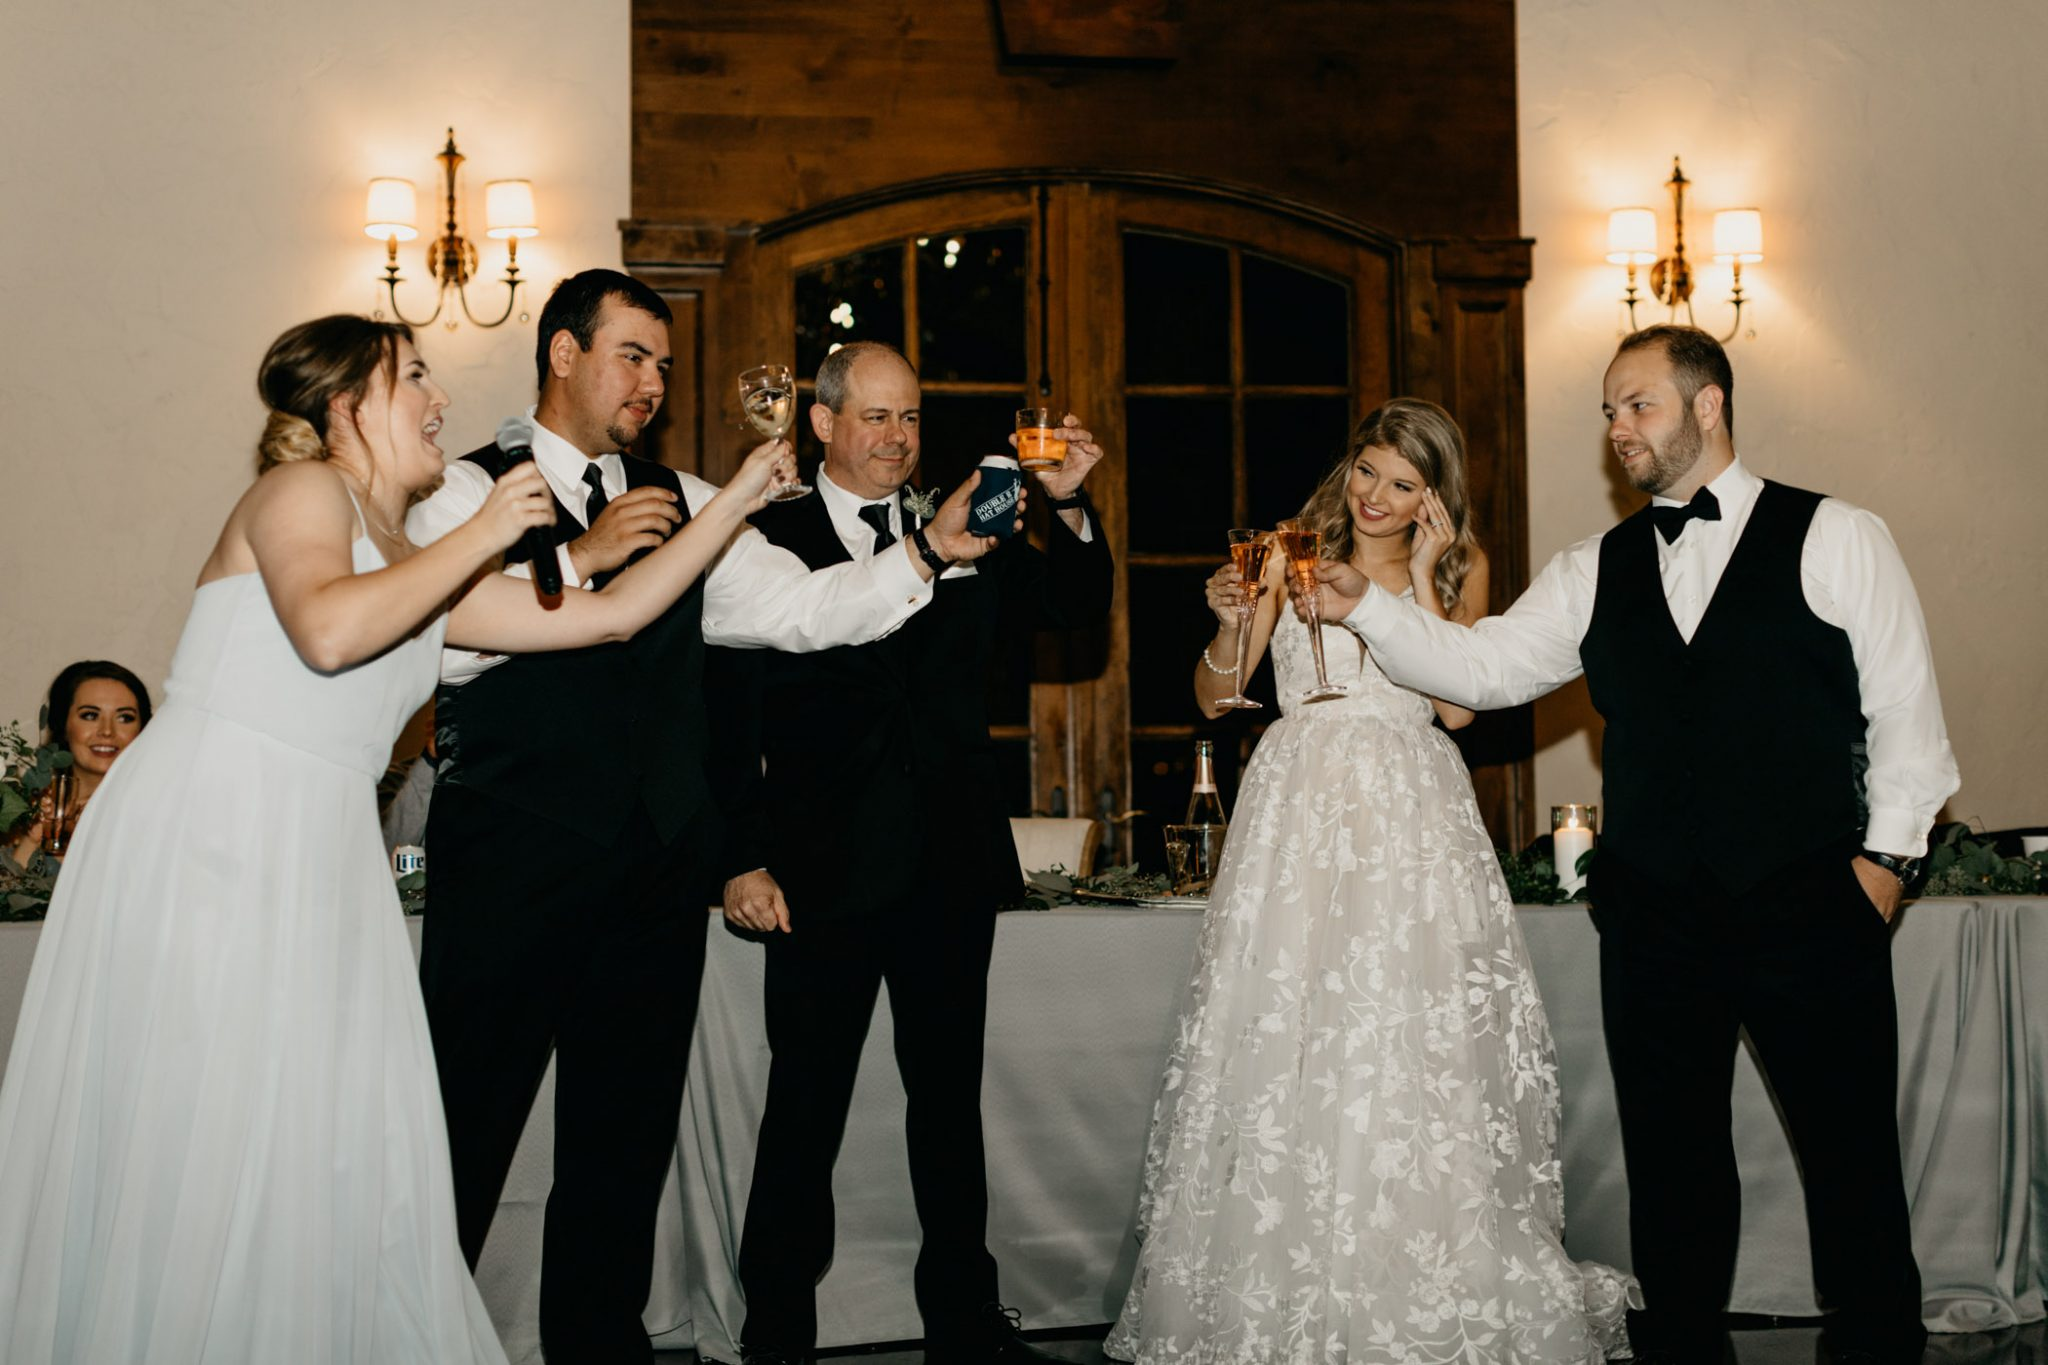 bridal party toasting to the newlyweds